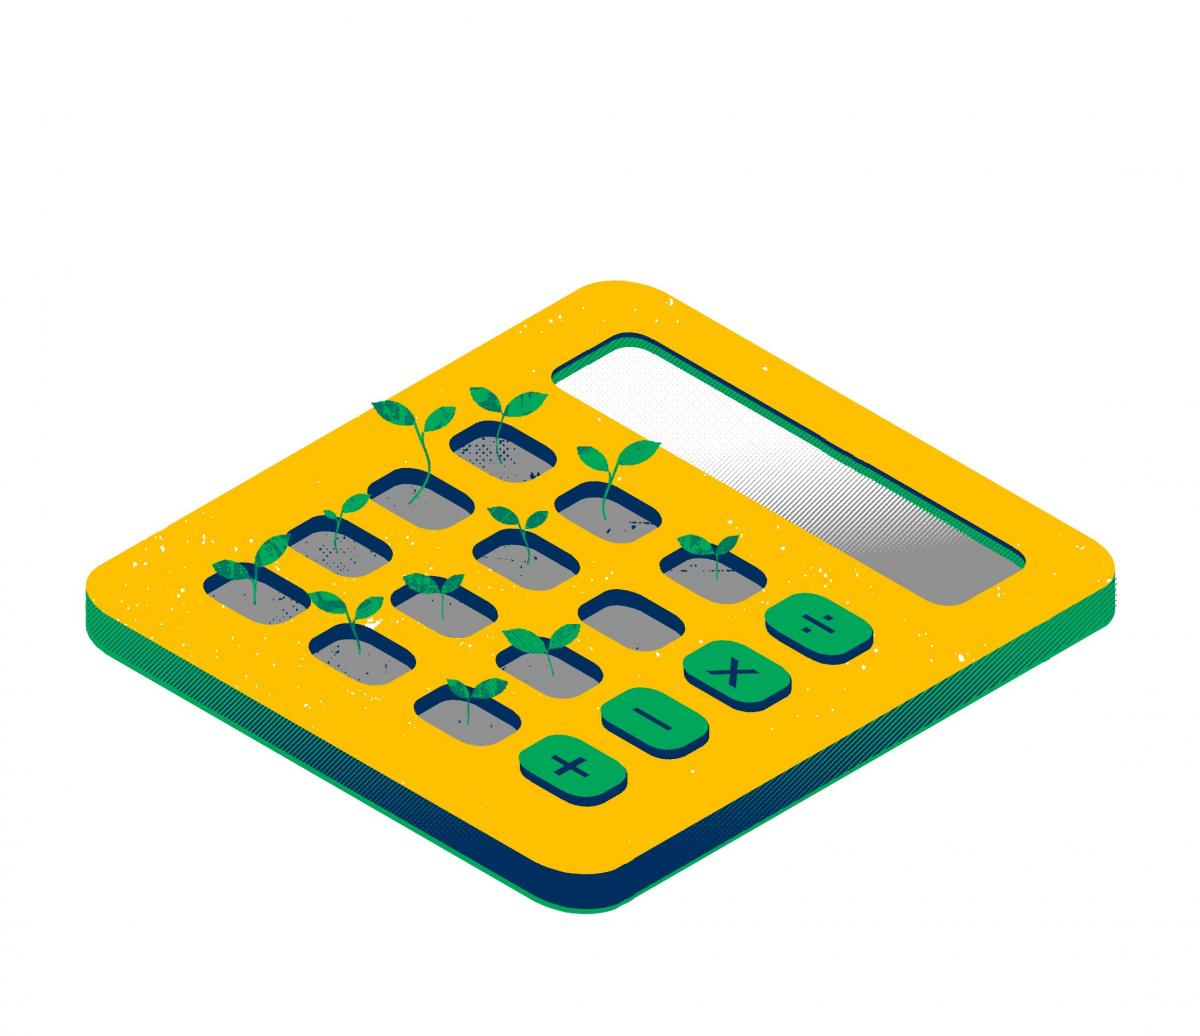 [Illustration of a calculator by Gary Neil]